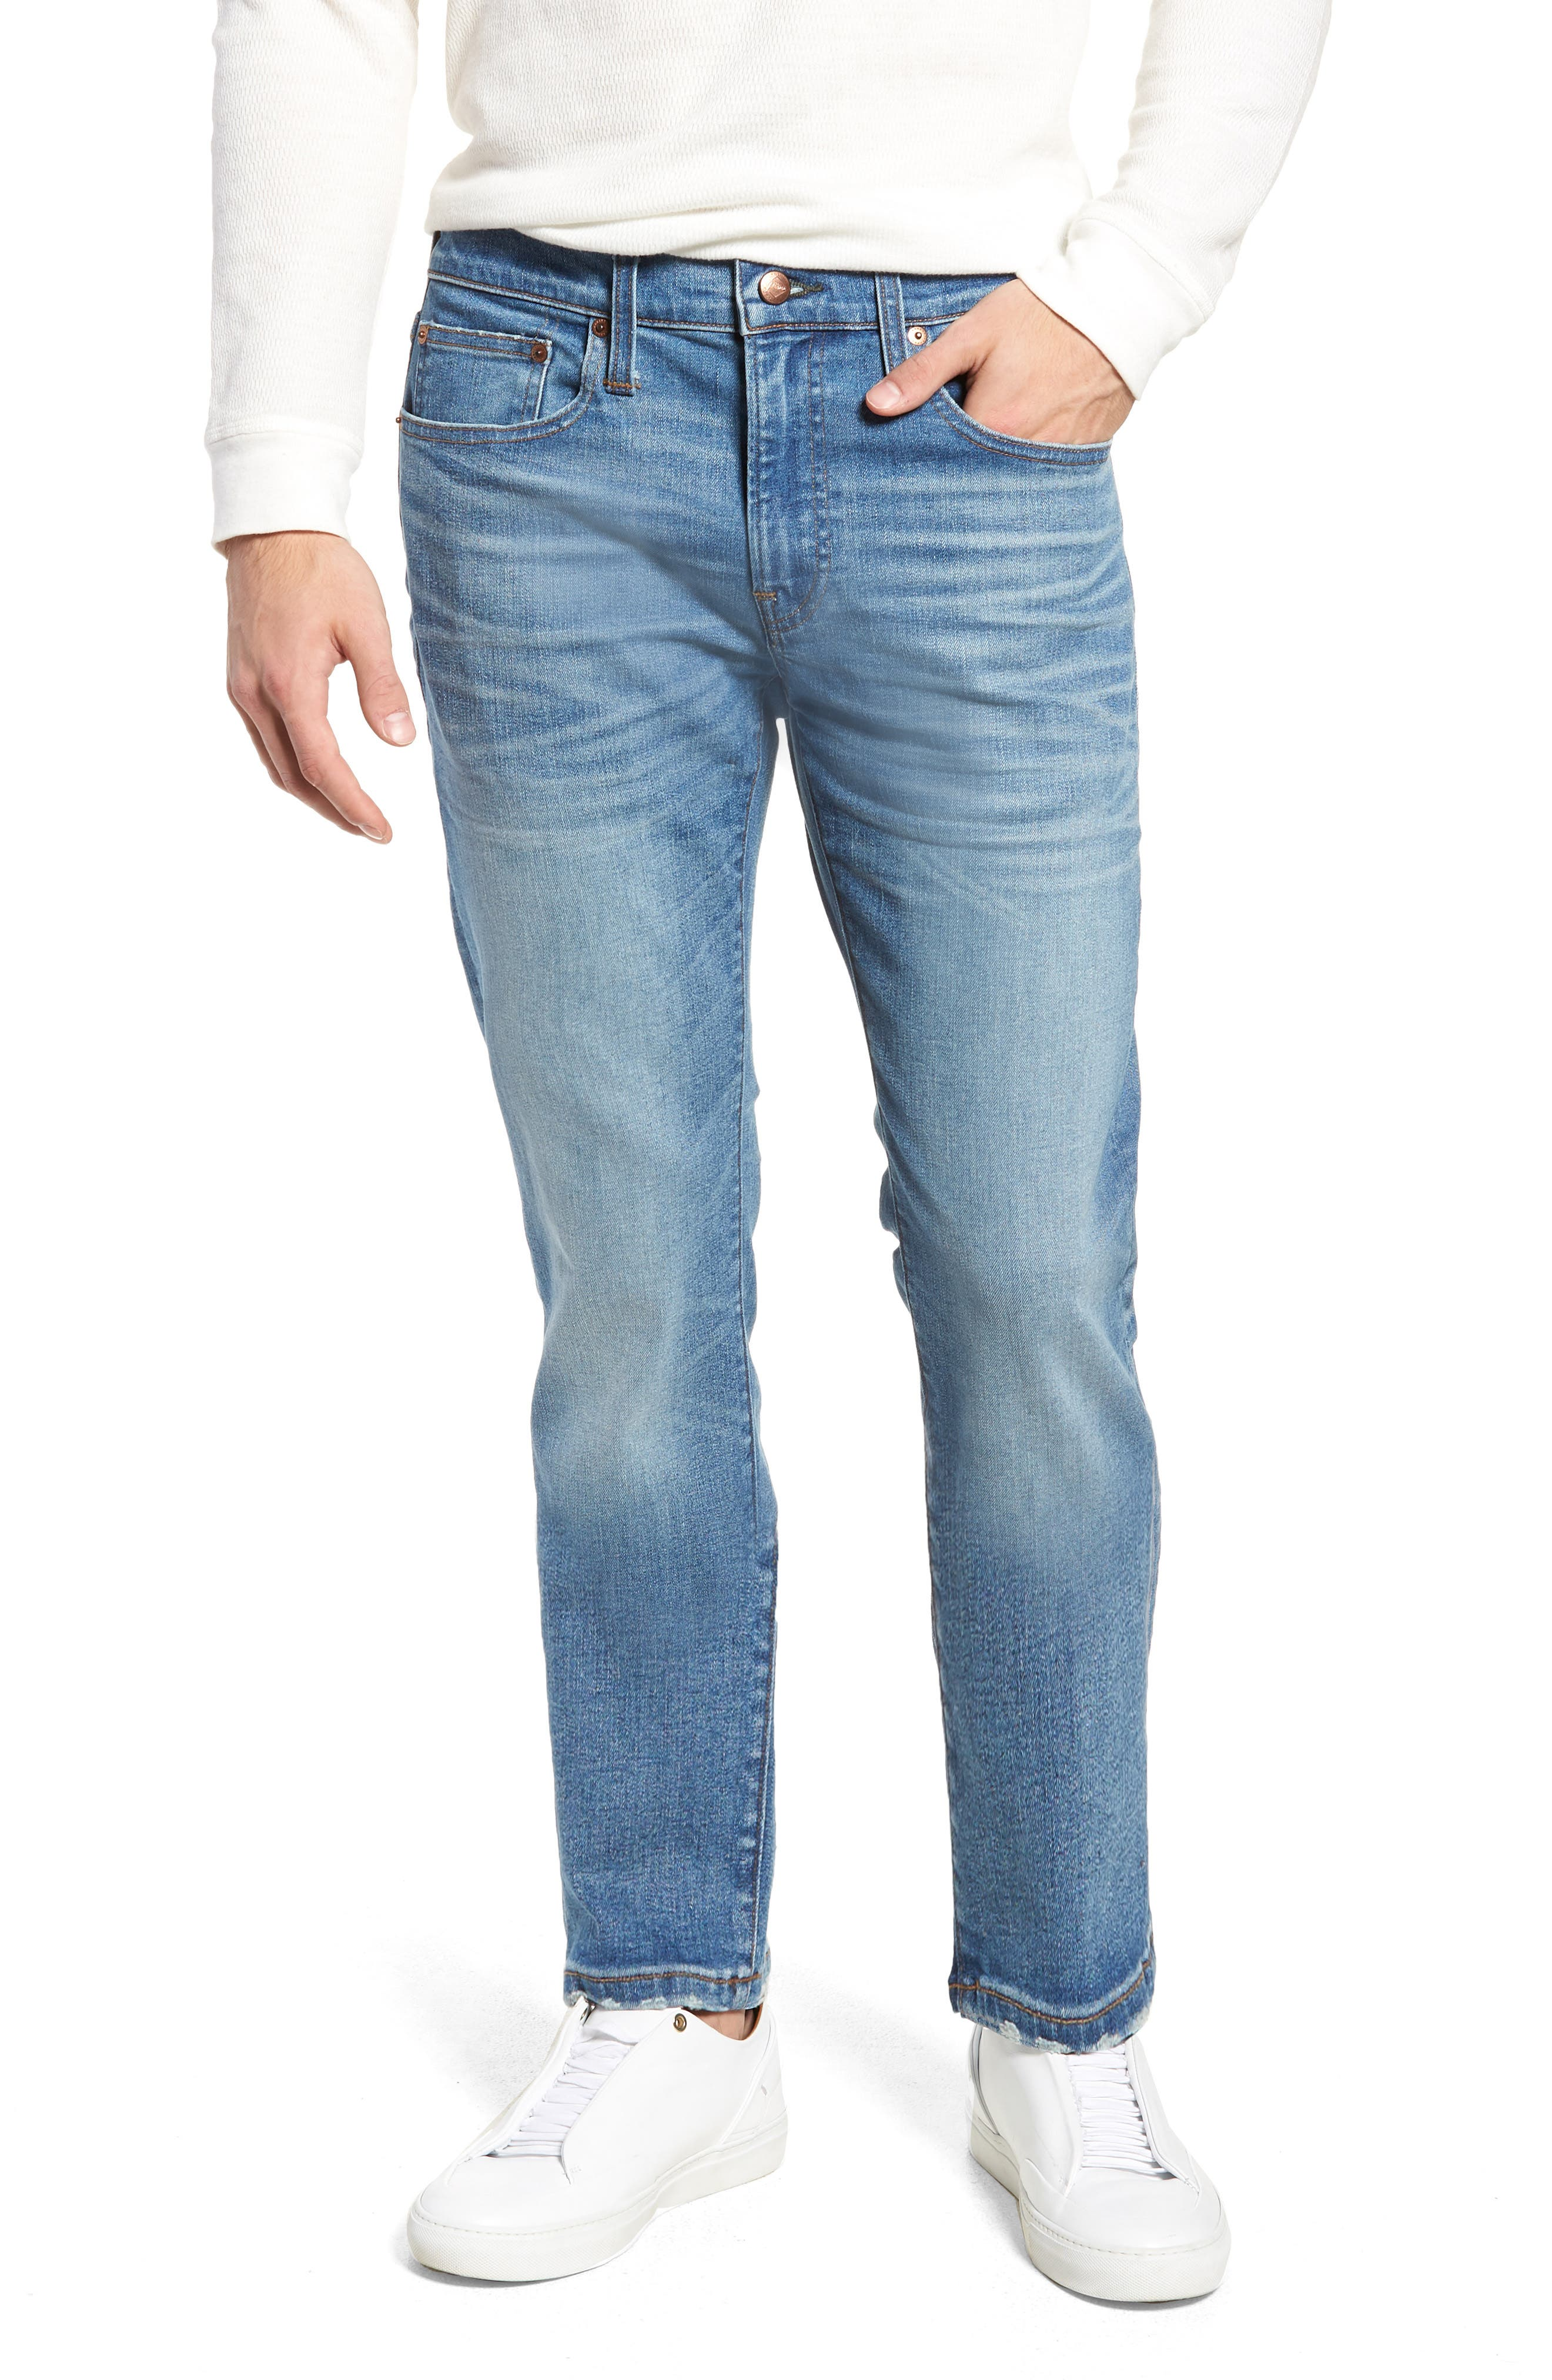 484 Slim Fit Distressed Stretch Jeans,                         Main,                         color, STOCKTON WASH